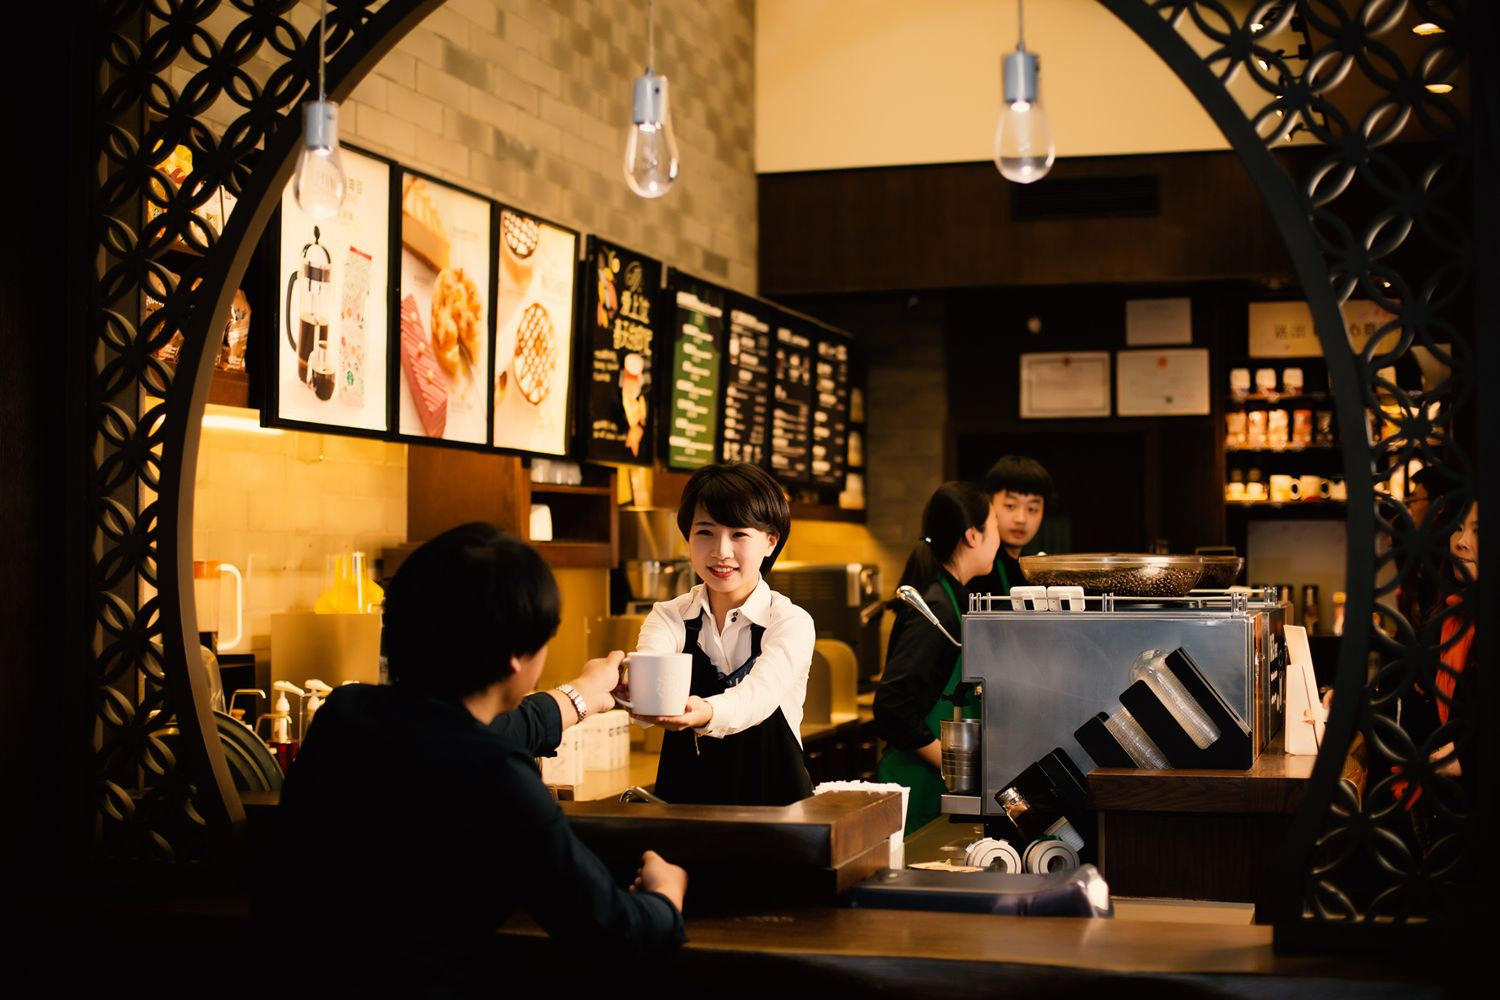 Starbucks to Acquire Remaining Shares of East China JV to Operate All Stores in Mainland China